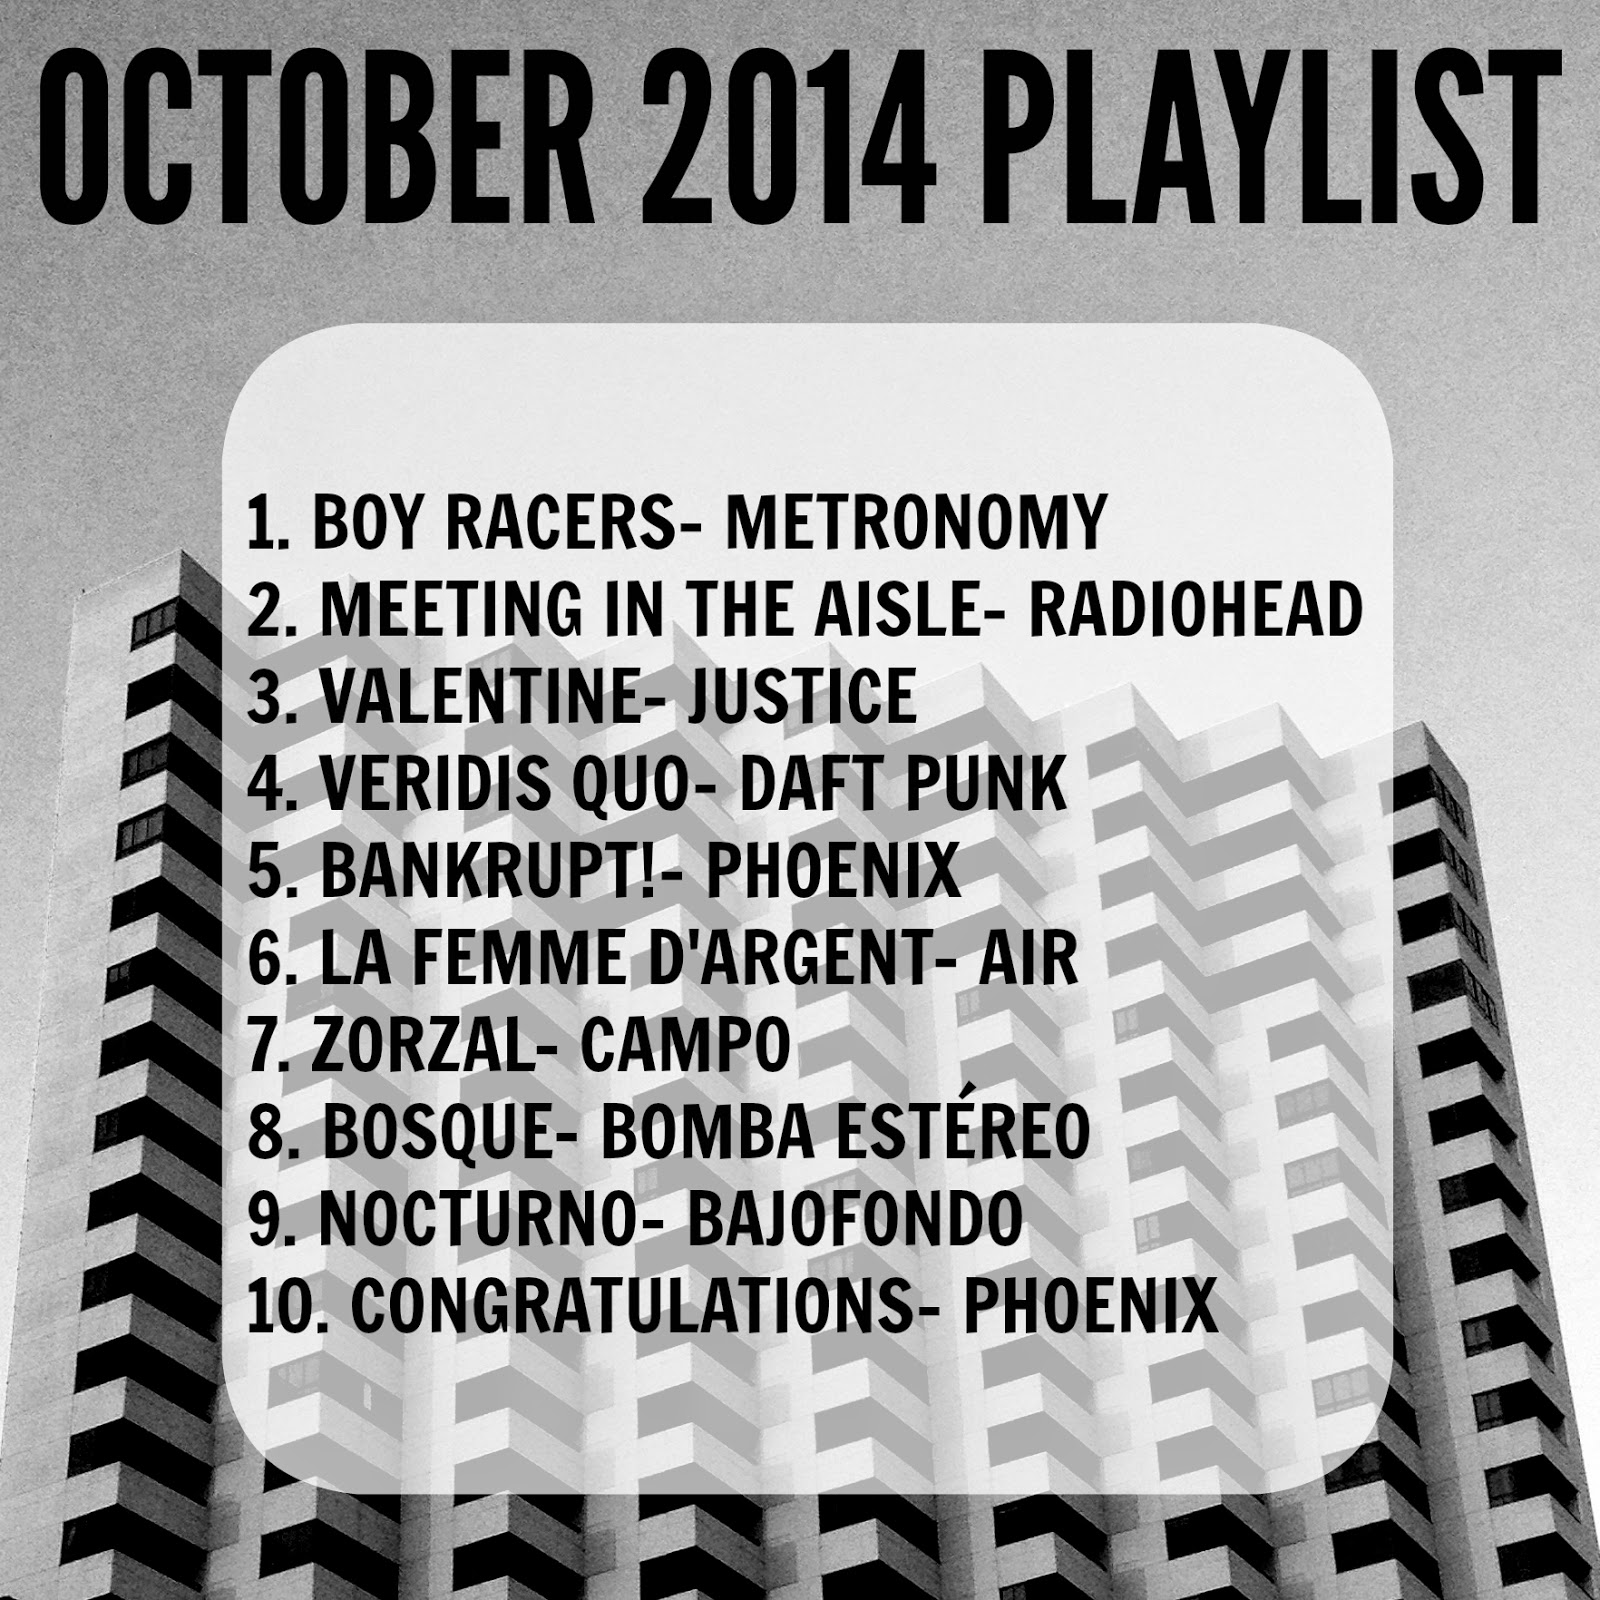 October 2014 Playlist